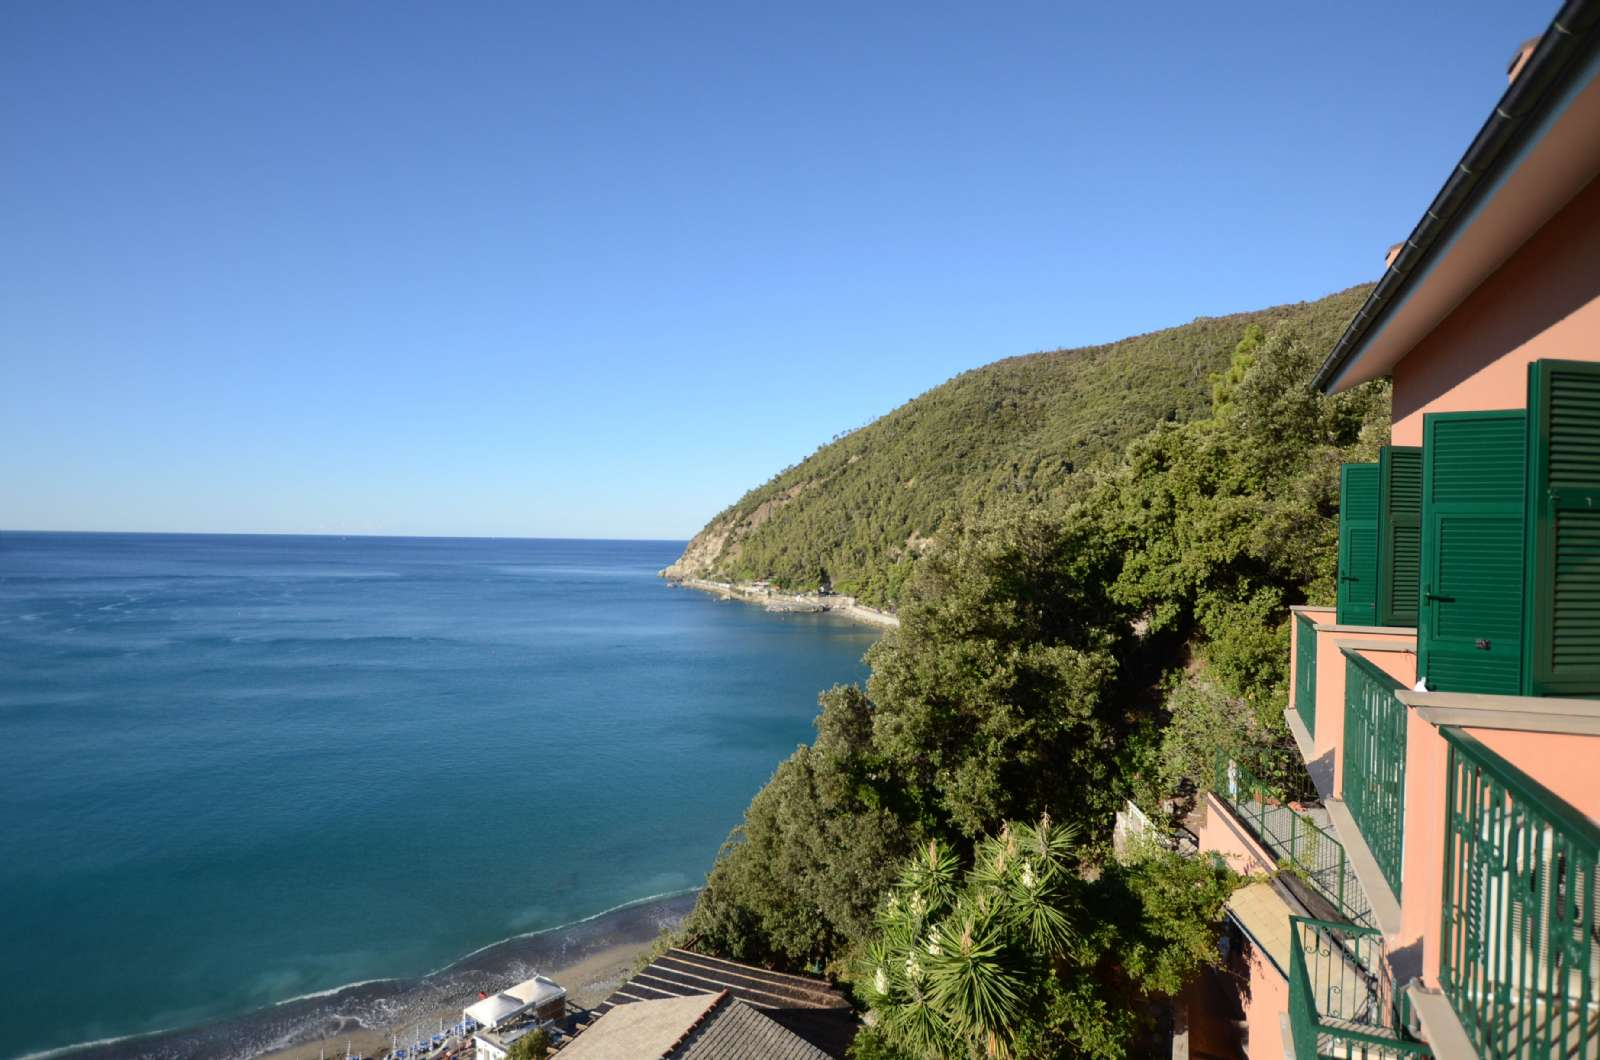 Views from Hotel Leopold in Liguria